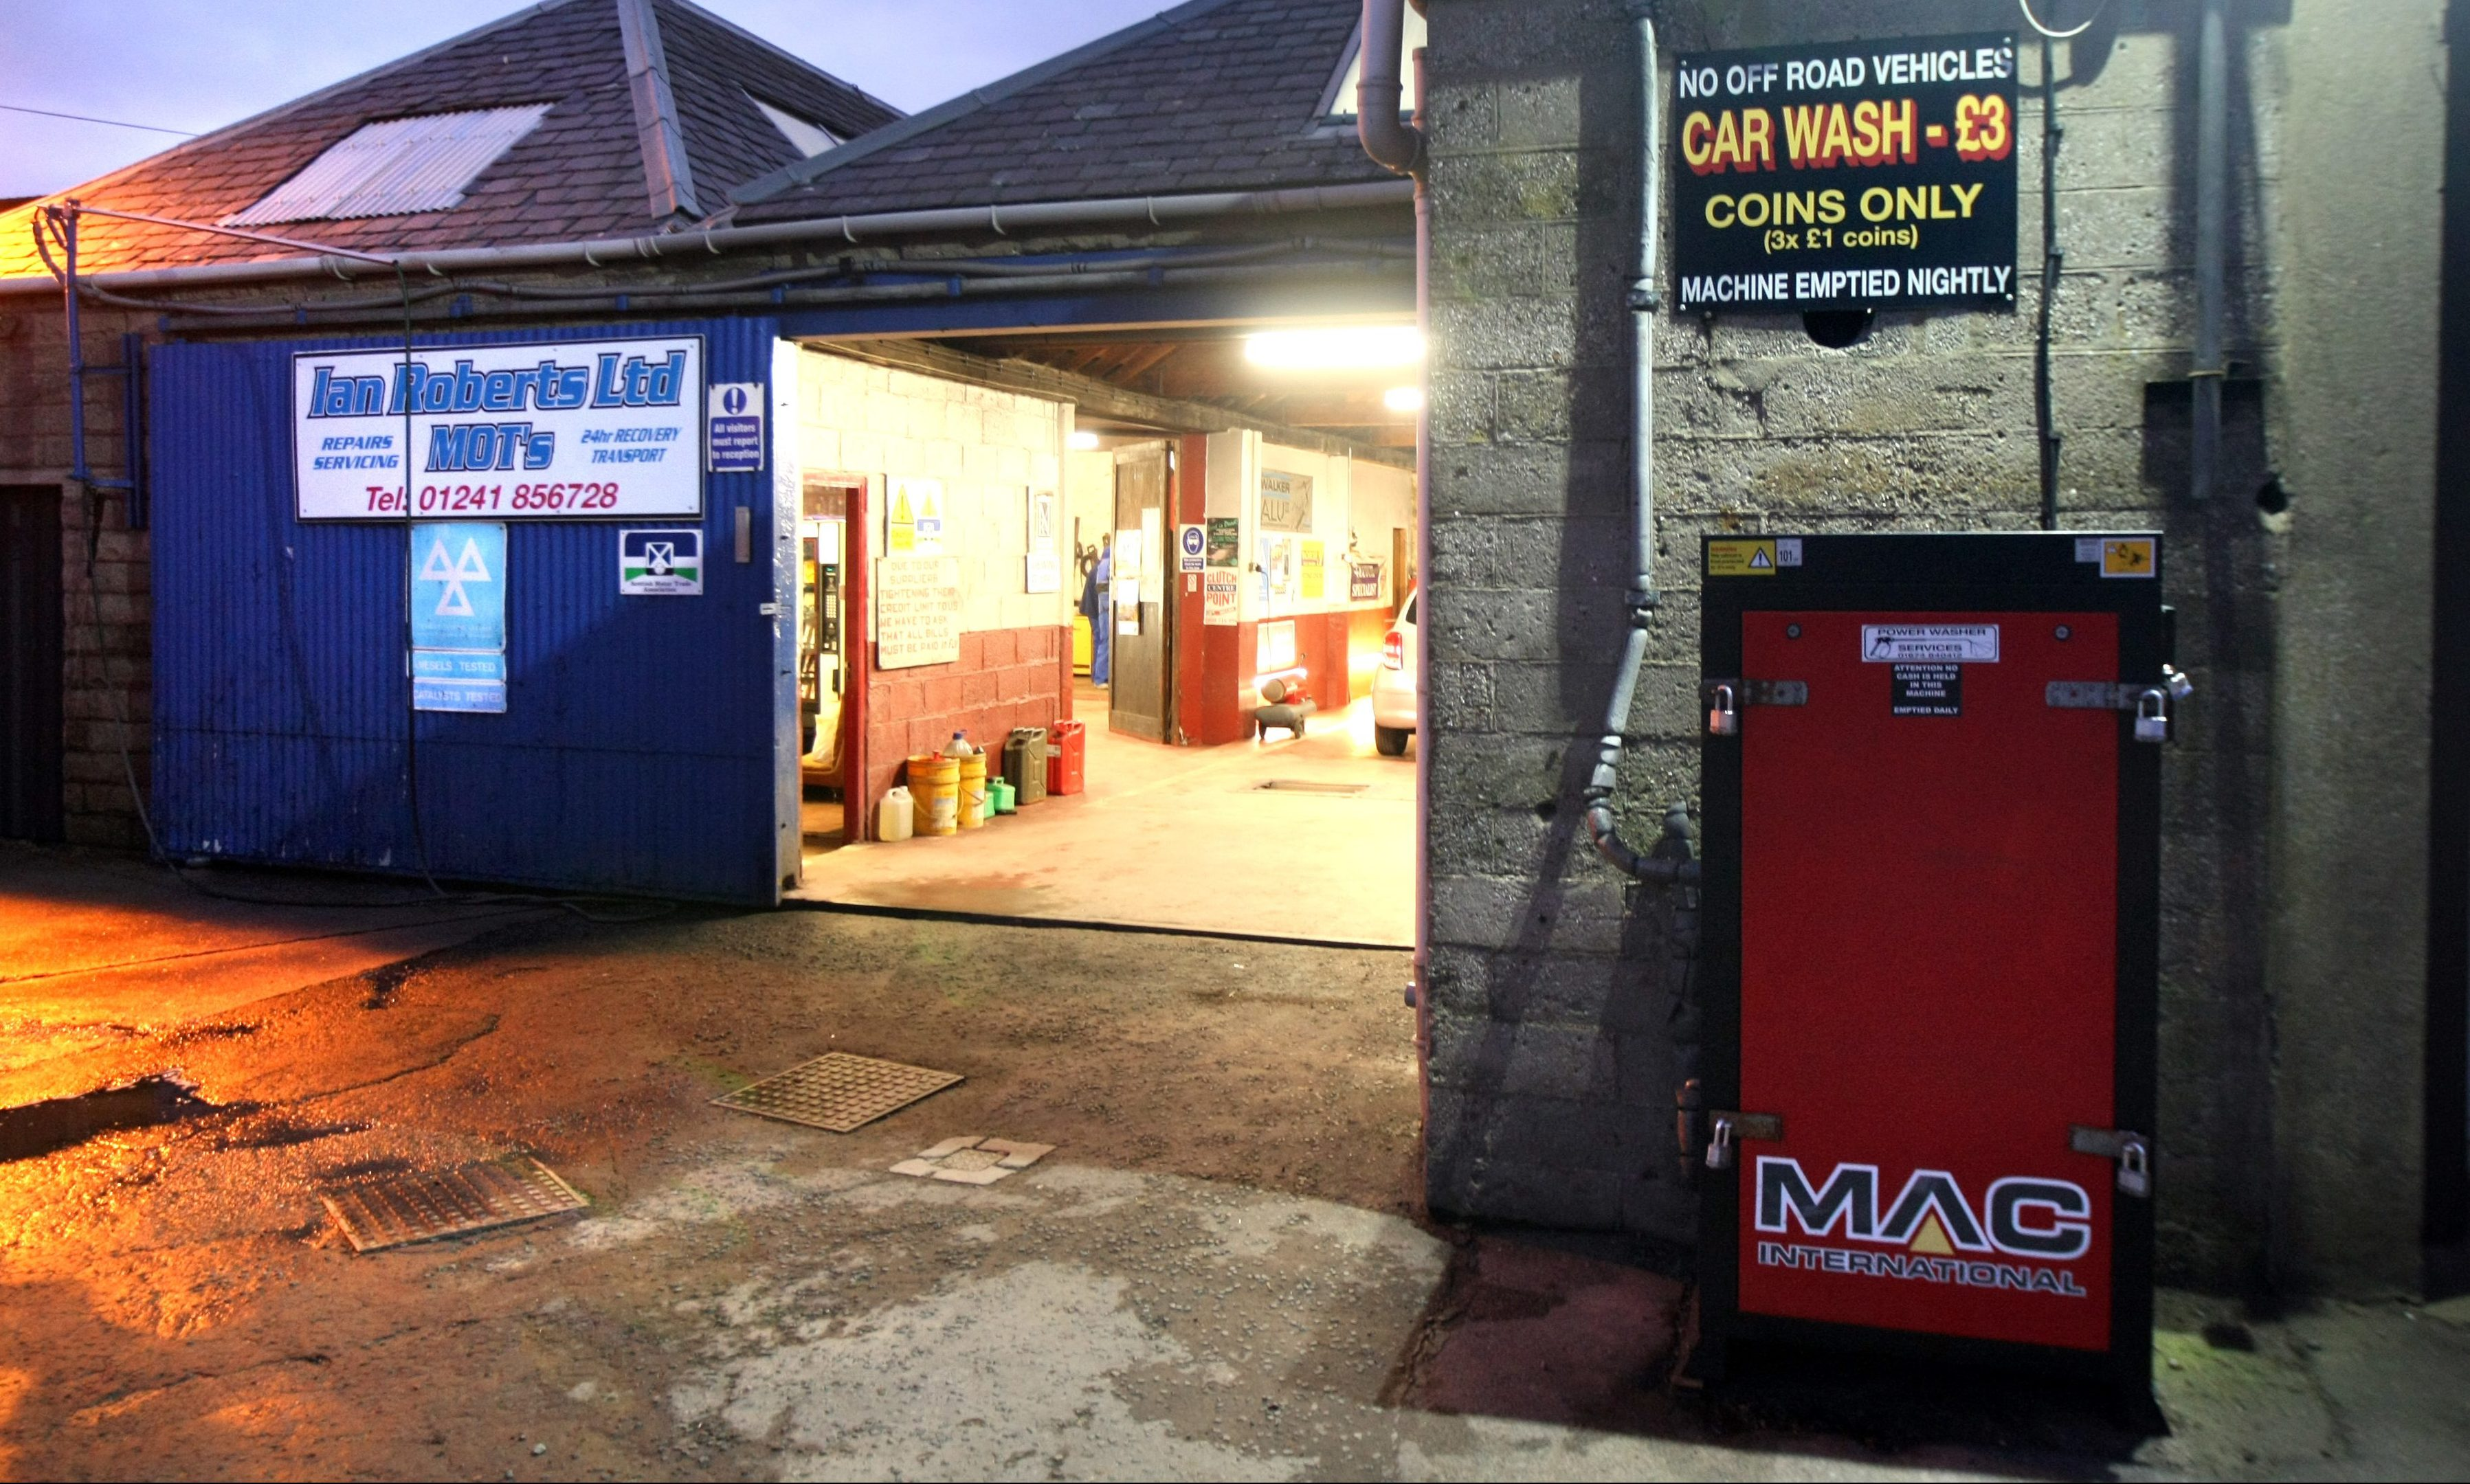 The Ian Roberts garage in Carnoustie.